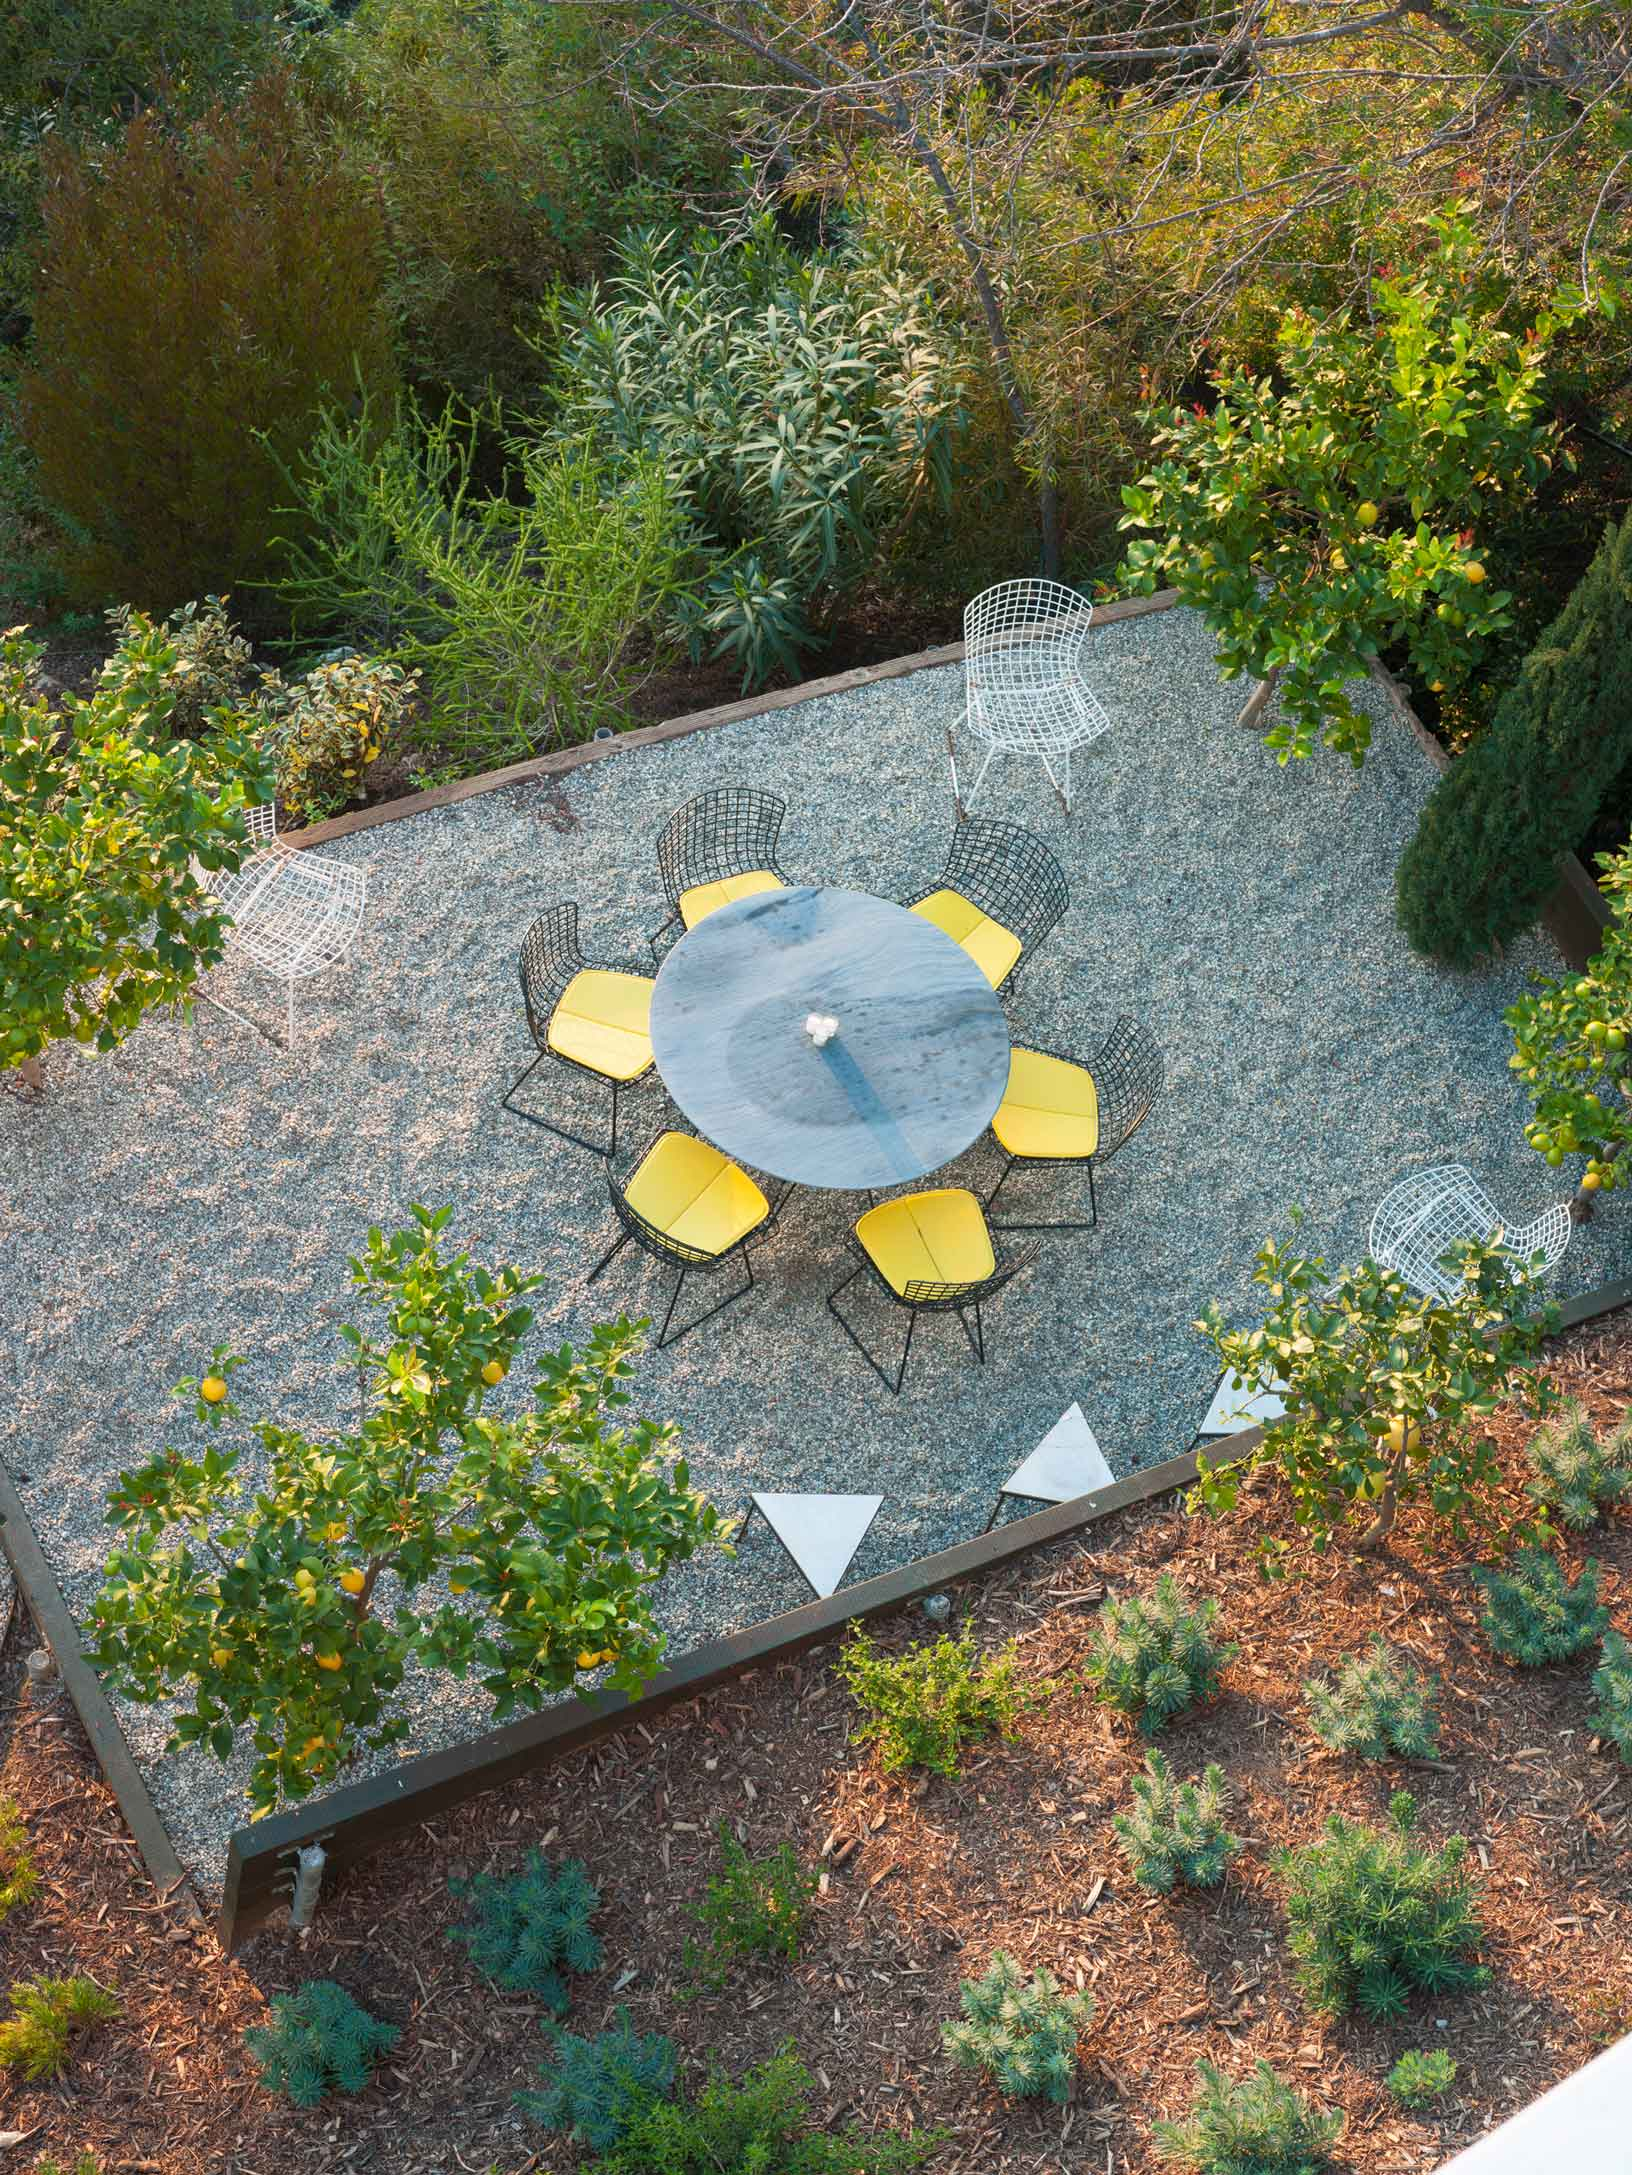 aerial view of circular table outdoors with yellow chairs